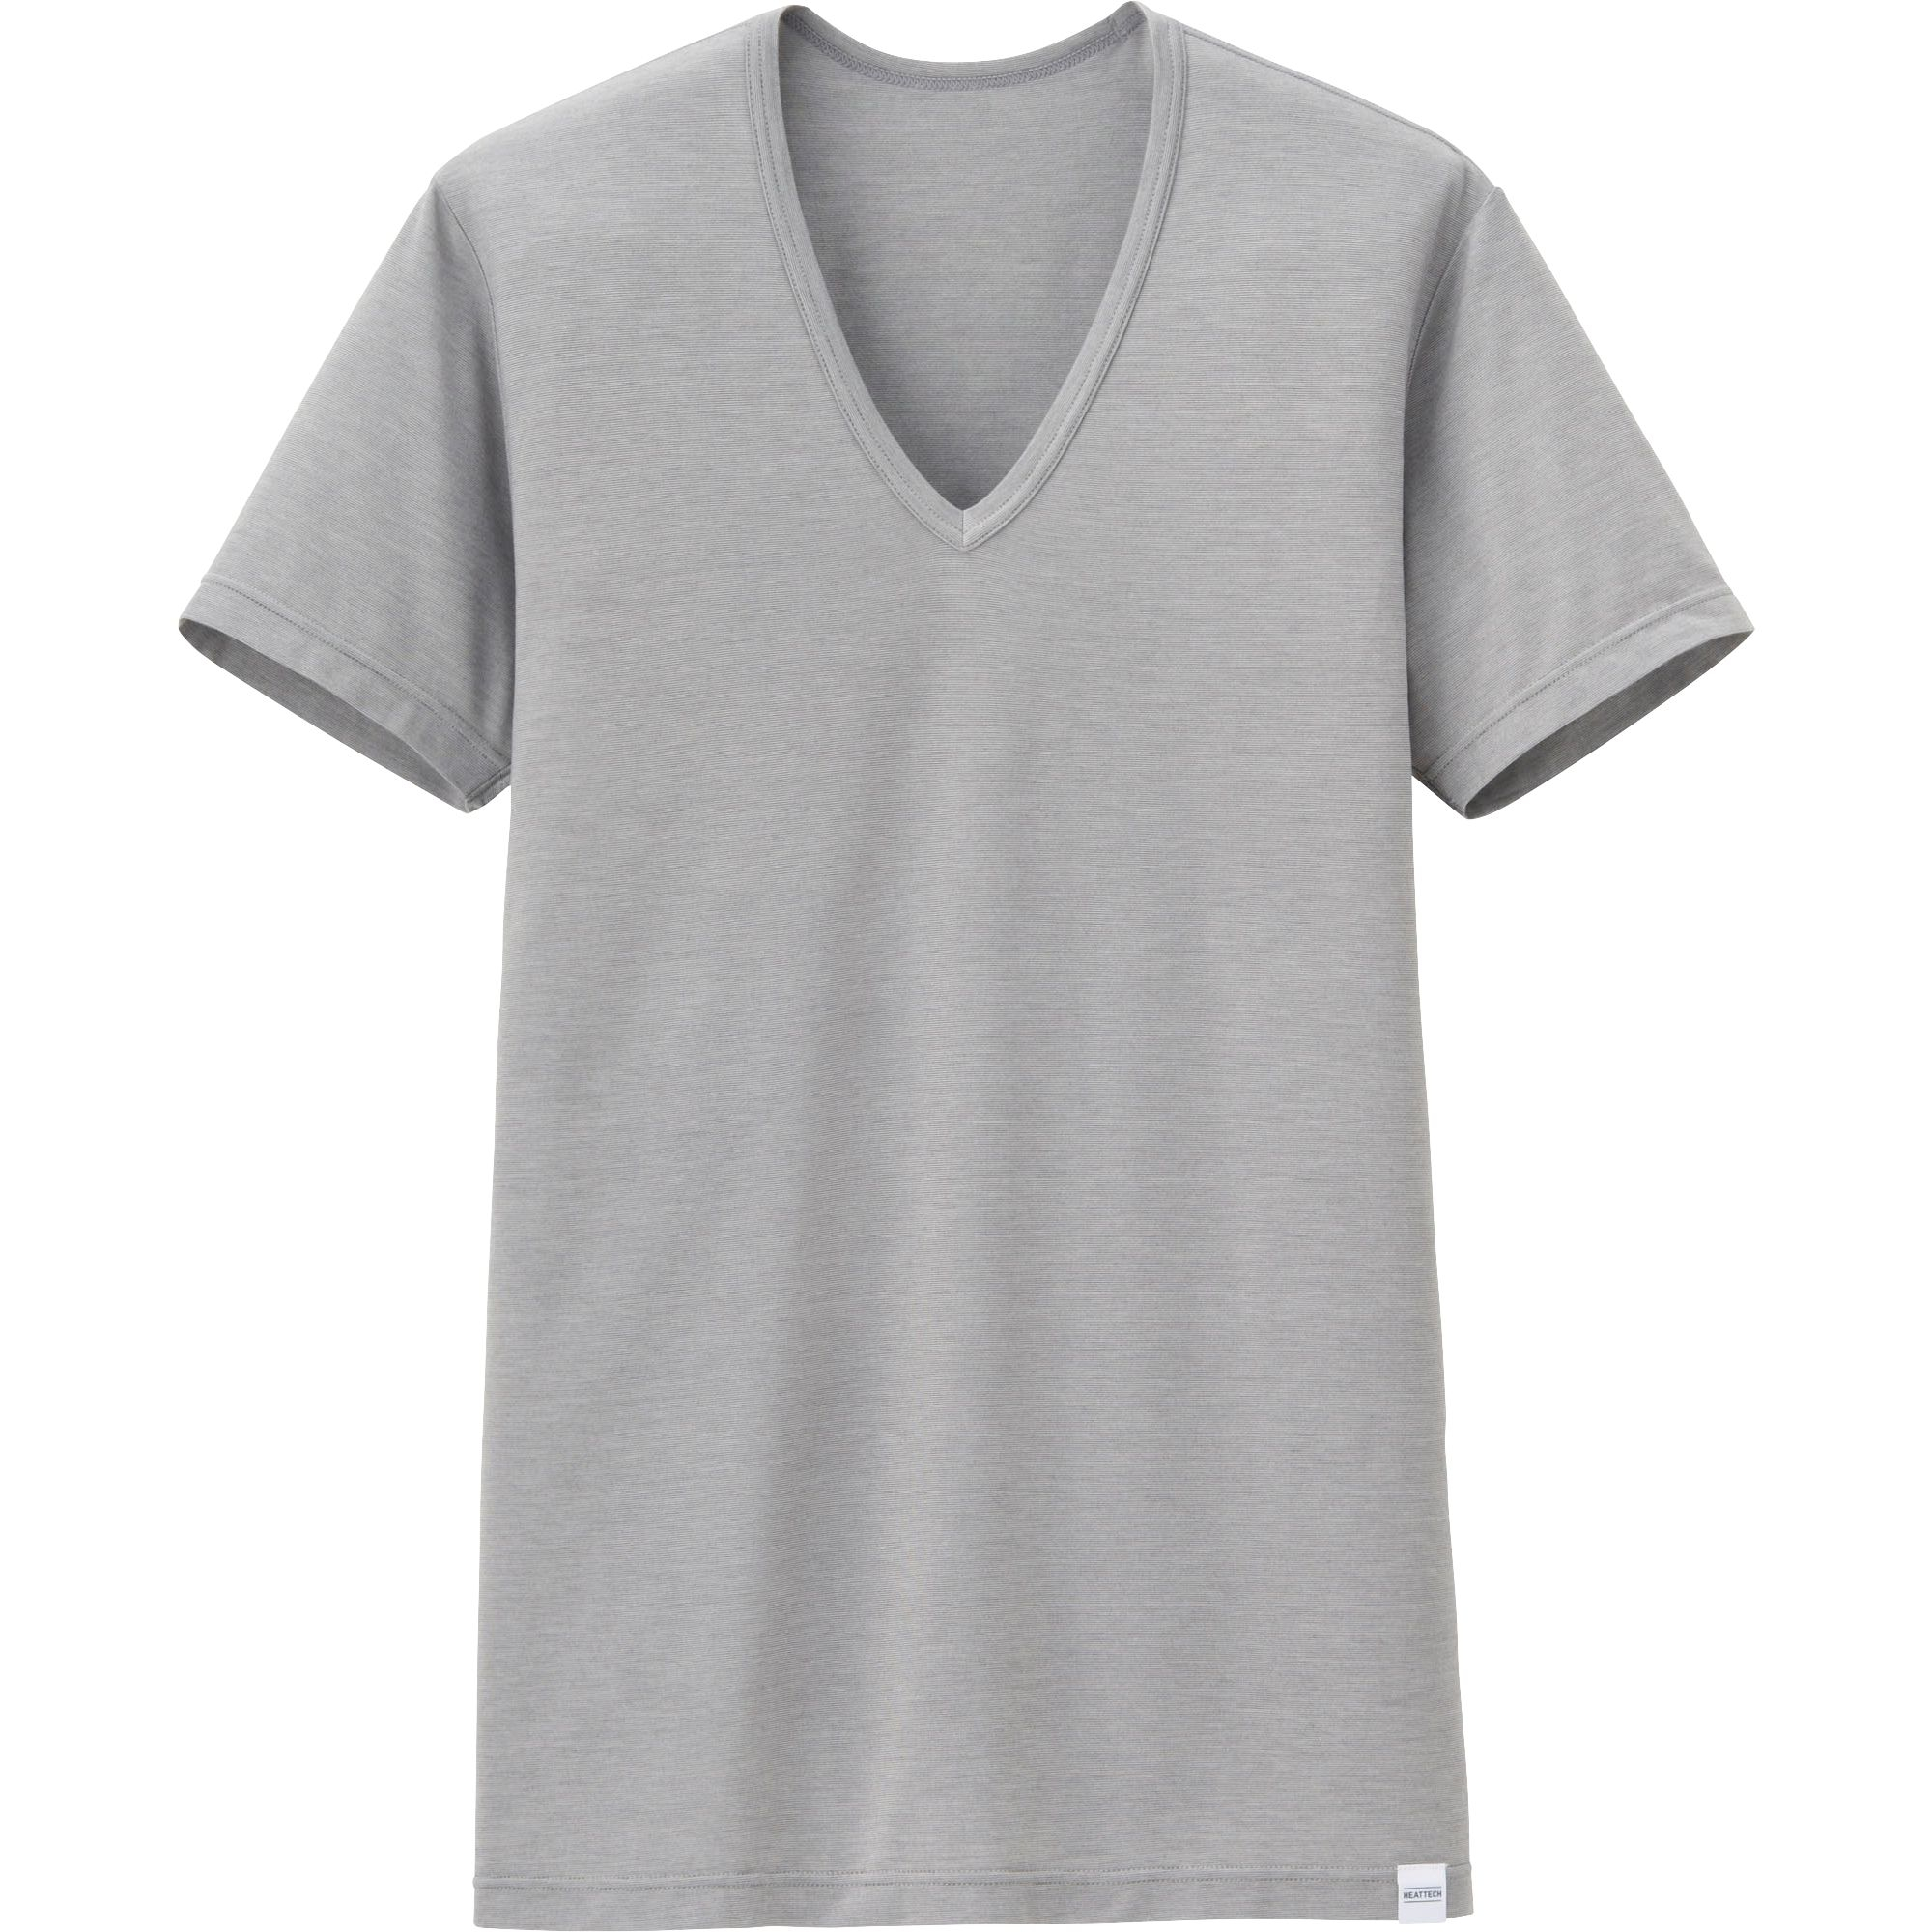 Uniqlo heattech short sleeve v neck t shirt in gray for for Uniqlo t shirt sizing